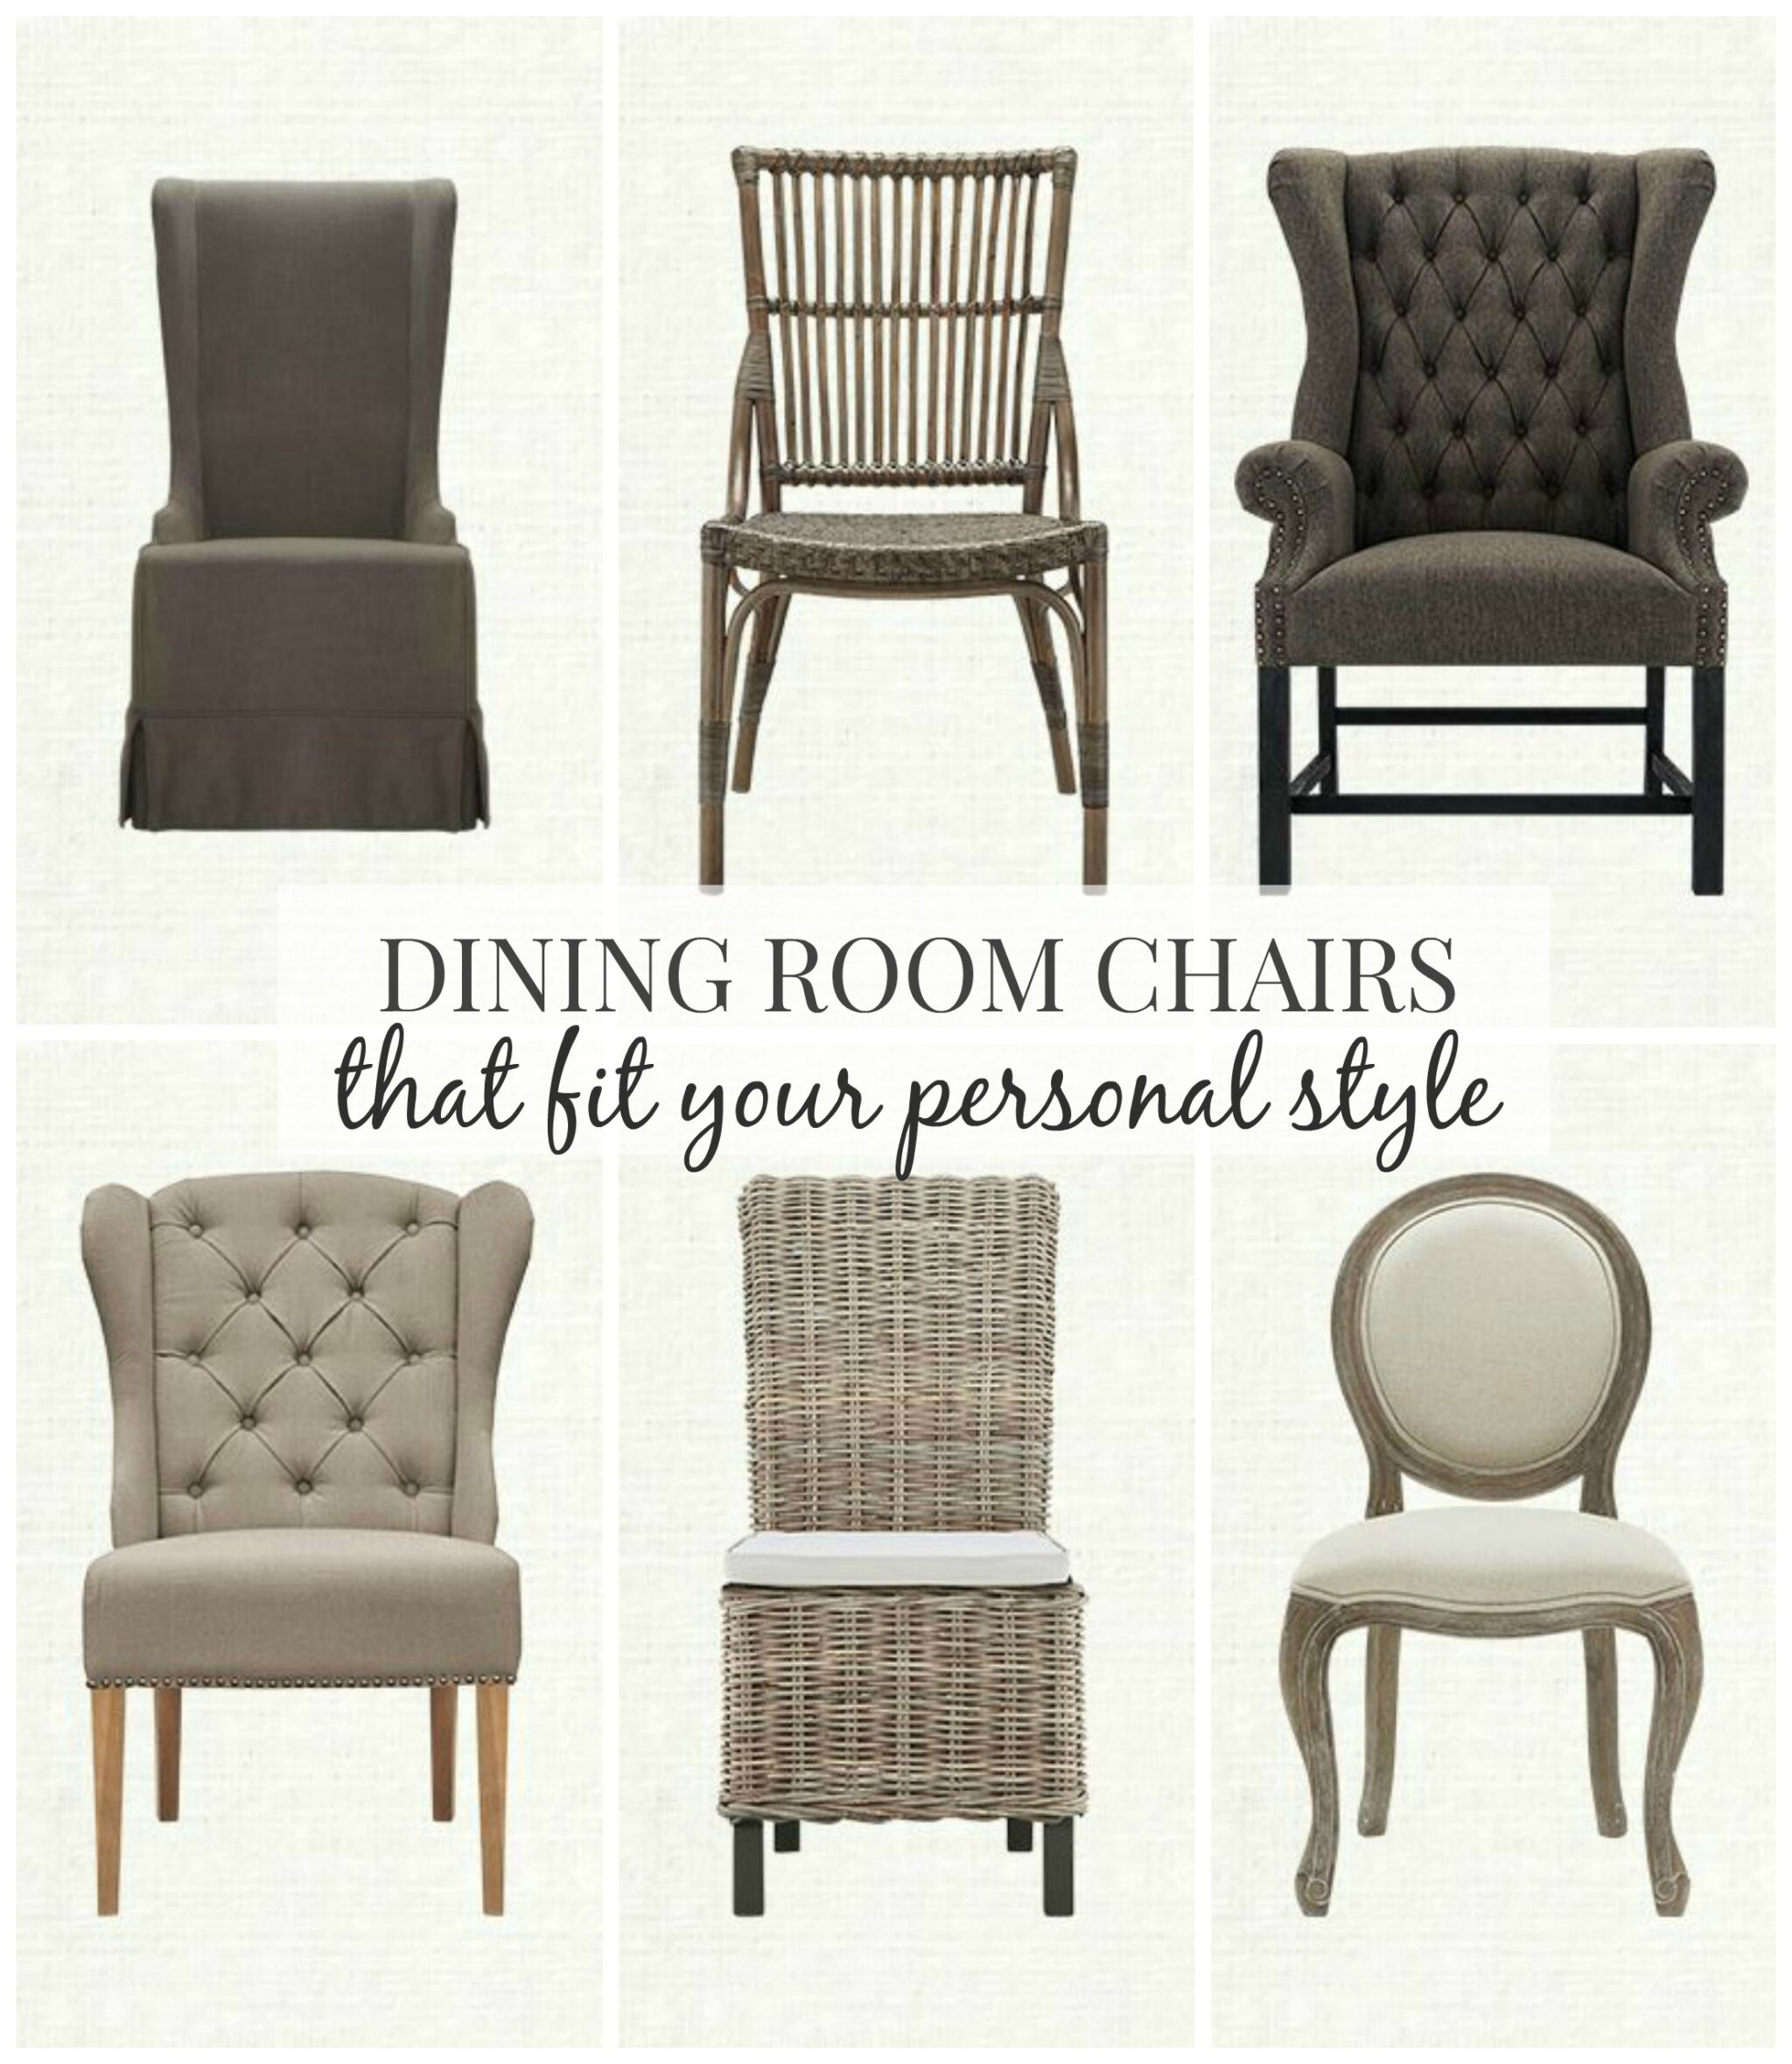 Ordinaire Dining Room Chairs That Fit Your Personal Style